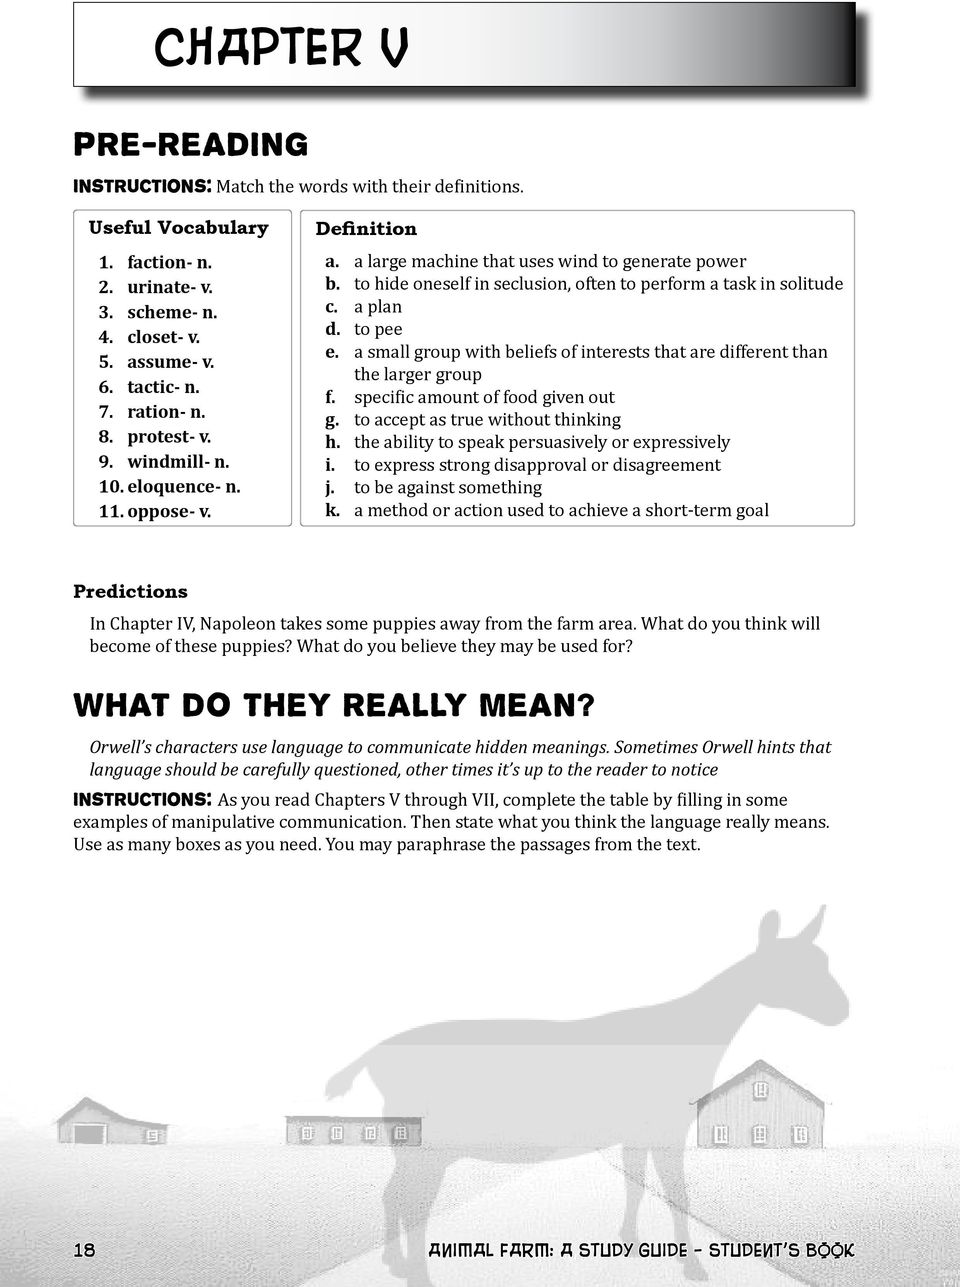 George Orwell S Animal Farm A Study Guide Student S Book Pdf